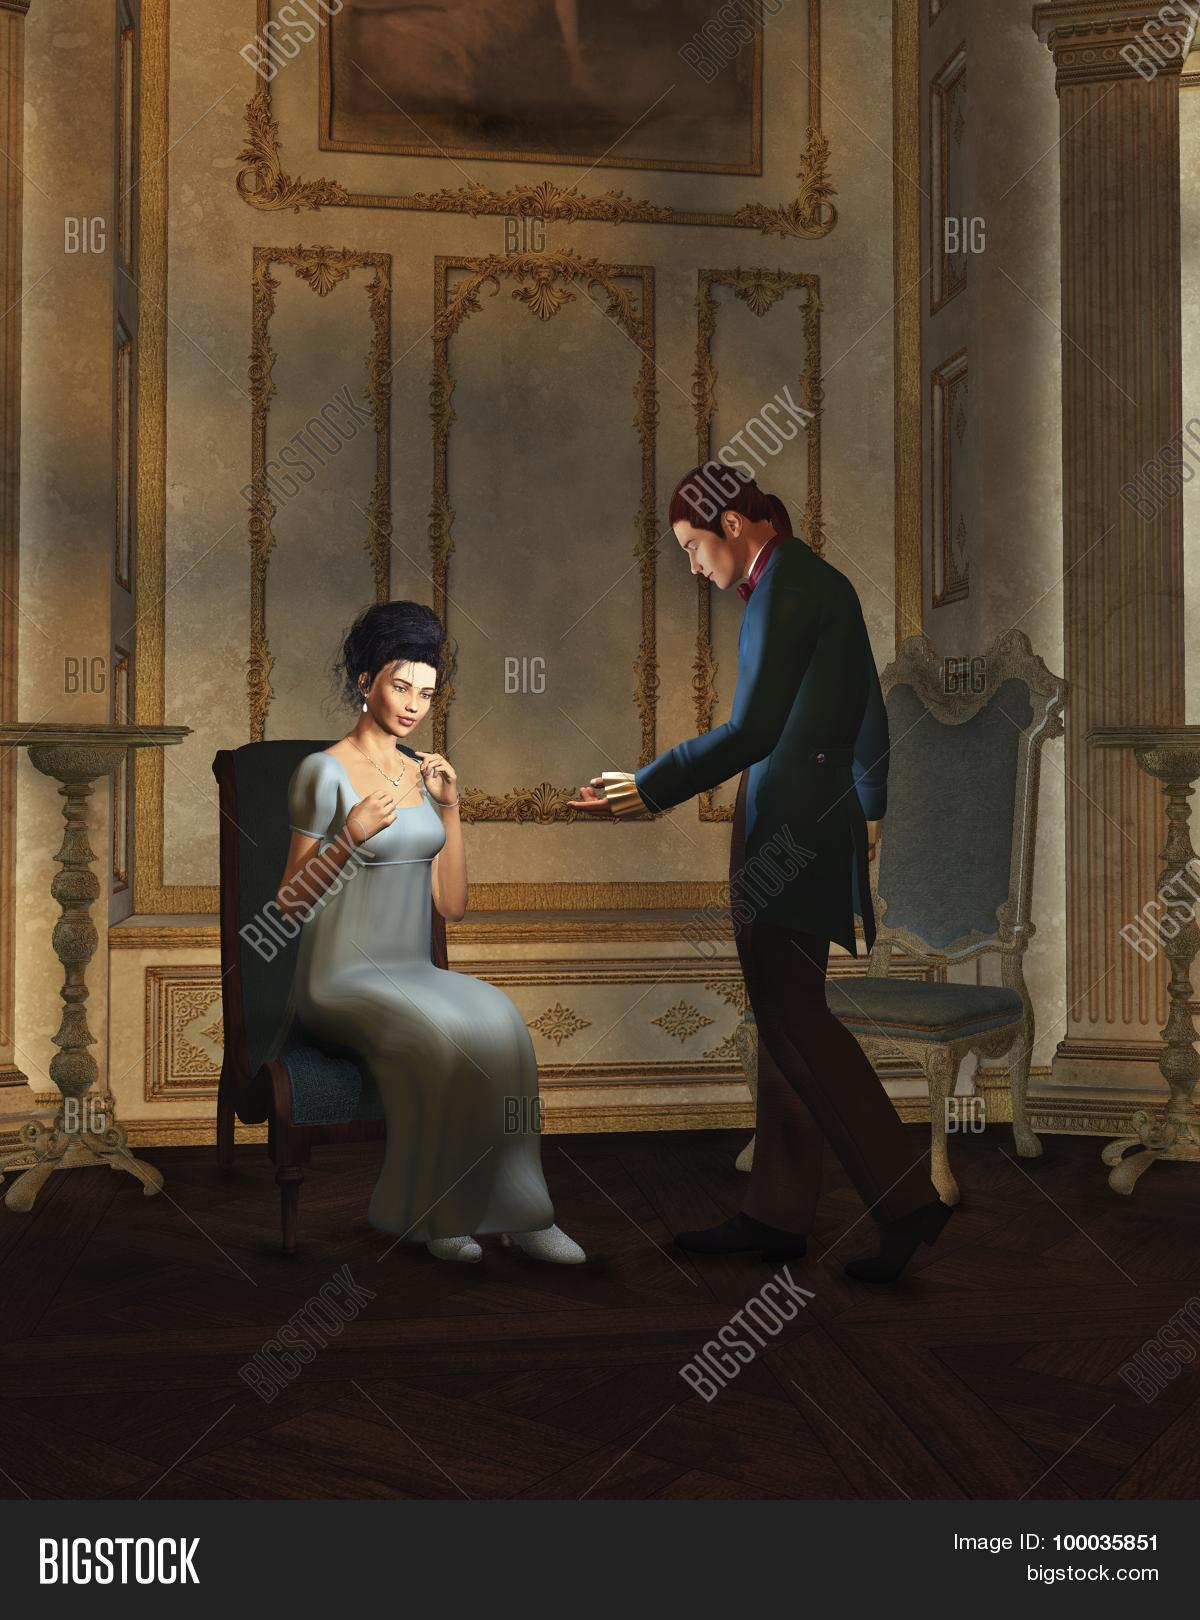 18th,19th,3d,attractive,ballroom,black,blue,candlelight,candlelit,century,chair,character,clothes,clothing,coat,colonial,couple,dark,digital,dress,earrings,female,frock,hair,historical,history,illustration,male,man,napoleonic,necklace,neo-classic,neo-classical,neoclassic,neoclassical,period,pretty,reconstruction,regency,render,shadows,shoes,sitting,slim,style,theme,velvet,woman